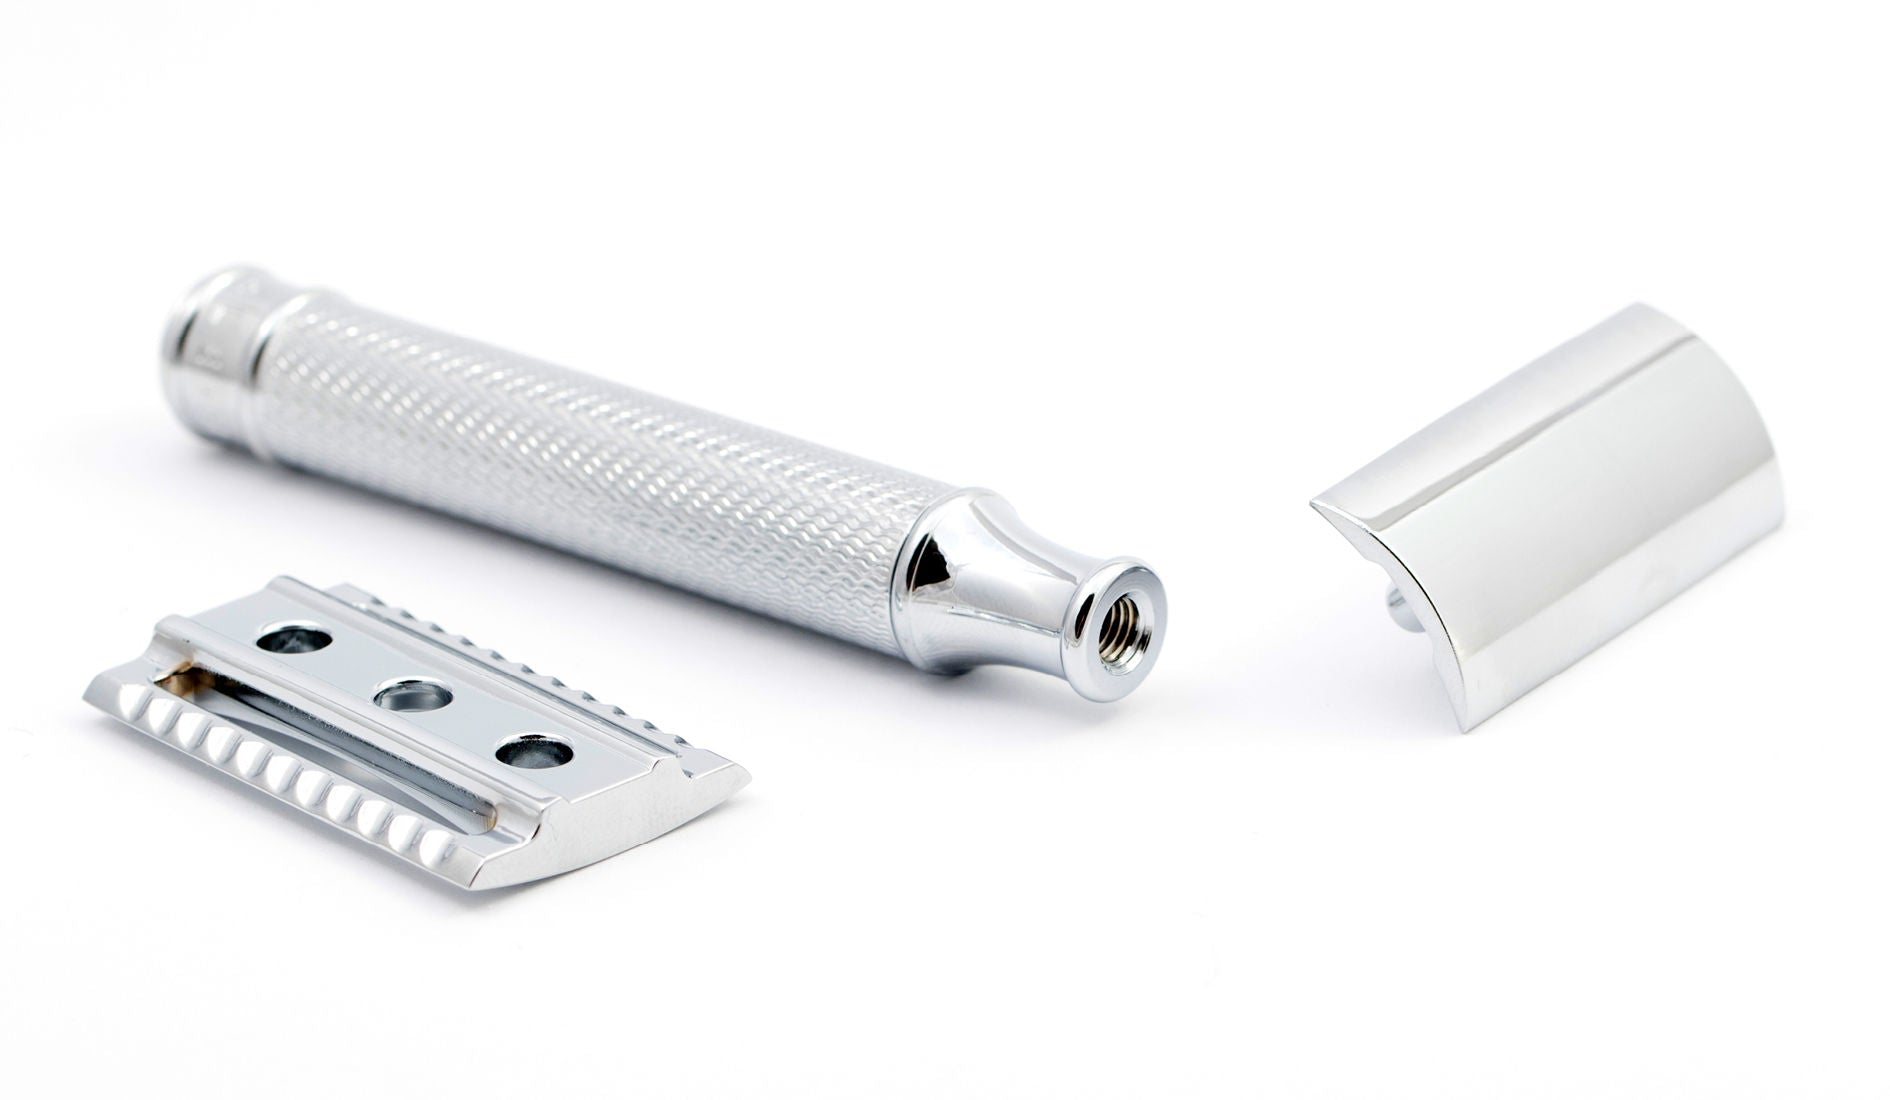 How to clean a safety razor